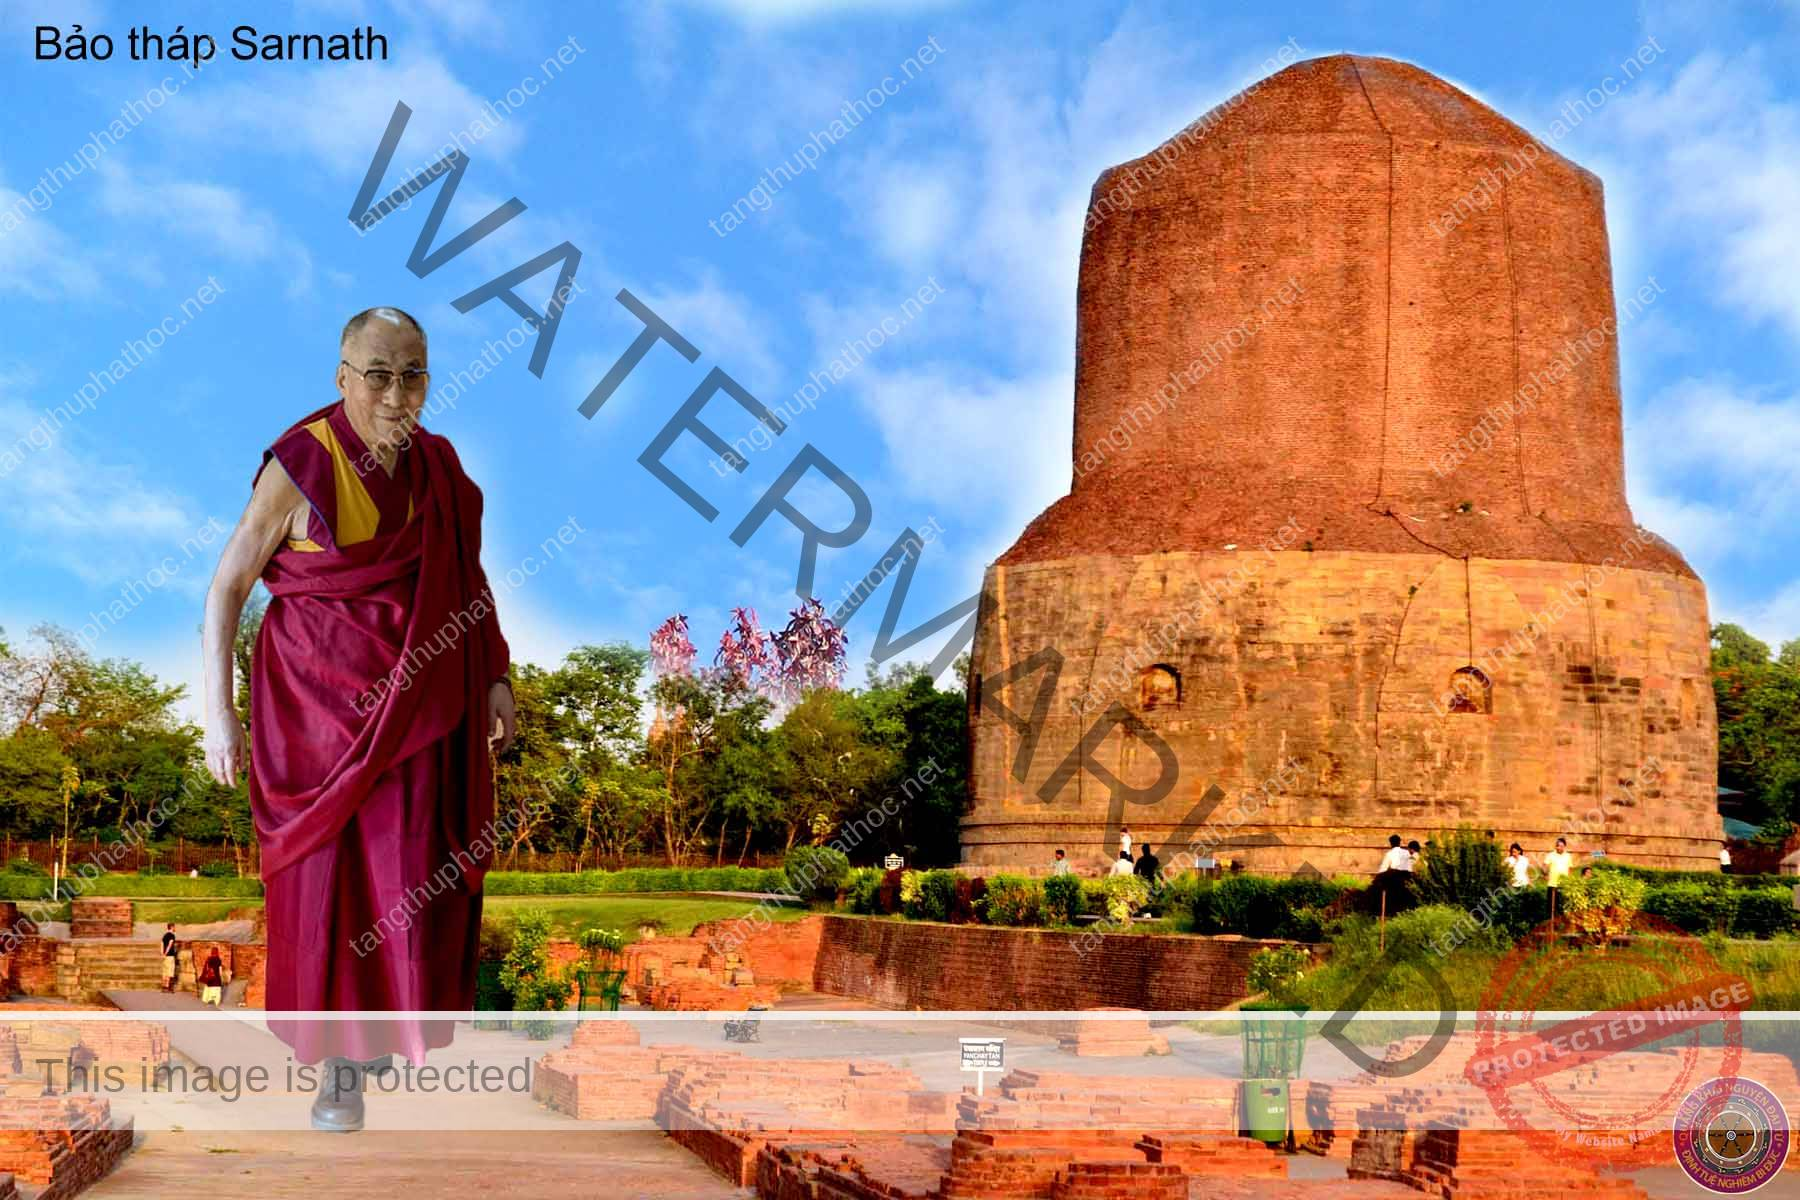 C:\Users\Tu Duc\Pictures\2011-11-14 reflectionA\Dalai Lama\6\sarnath1.jpg